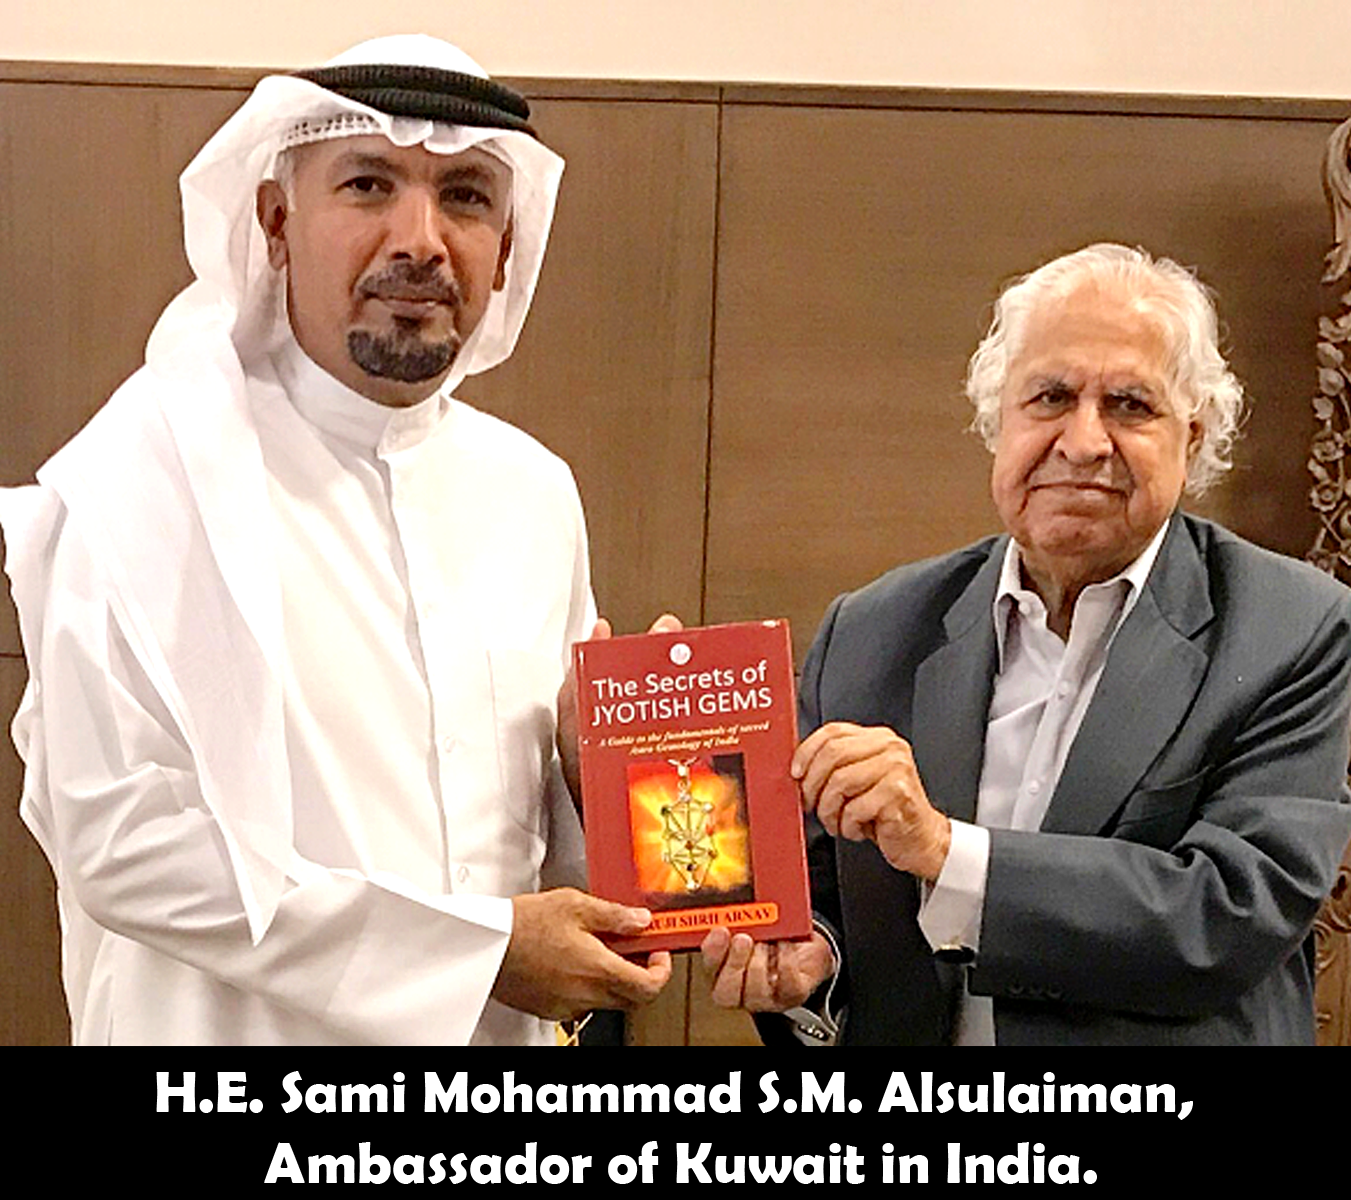 H.E. Sami Mohammad S.M. Alsulaiman, Ambassador of Kuwait in India releasing the secrets of Jyotish Gems